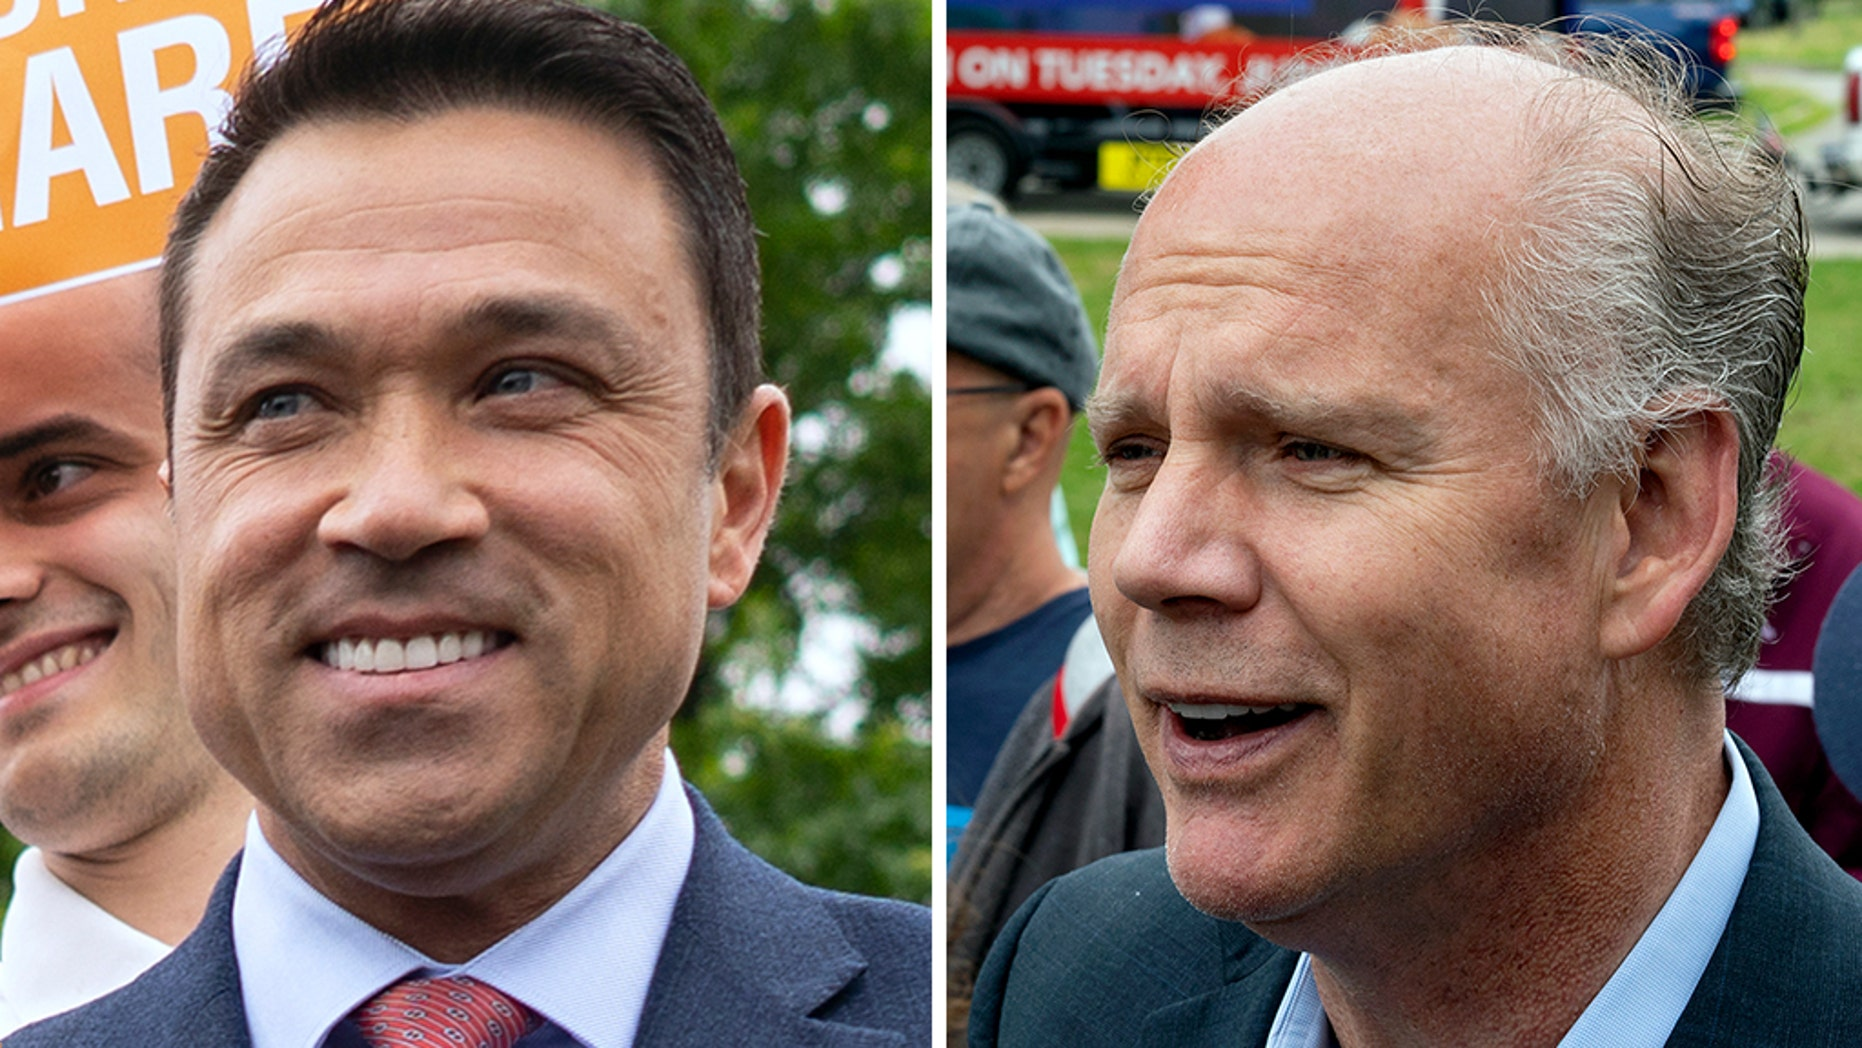 Former congressman Michael Grimm, left, is trying to unseat Rep. Dan Donovan in New York's 11th District